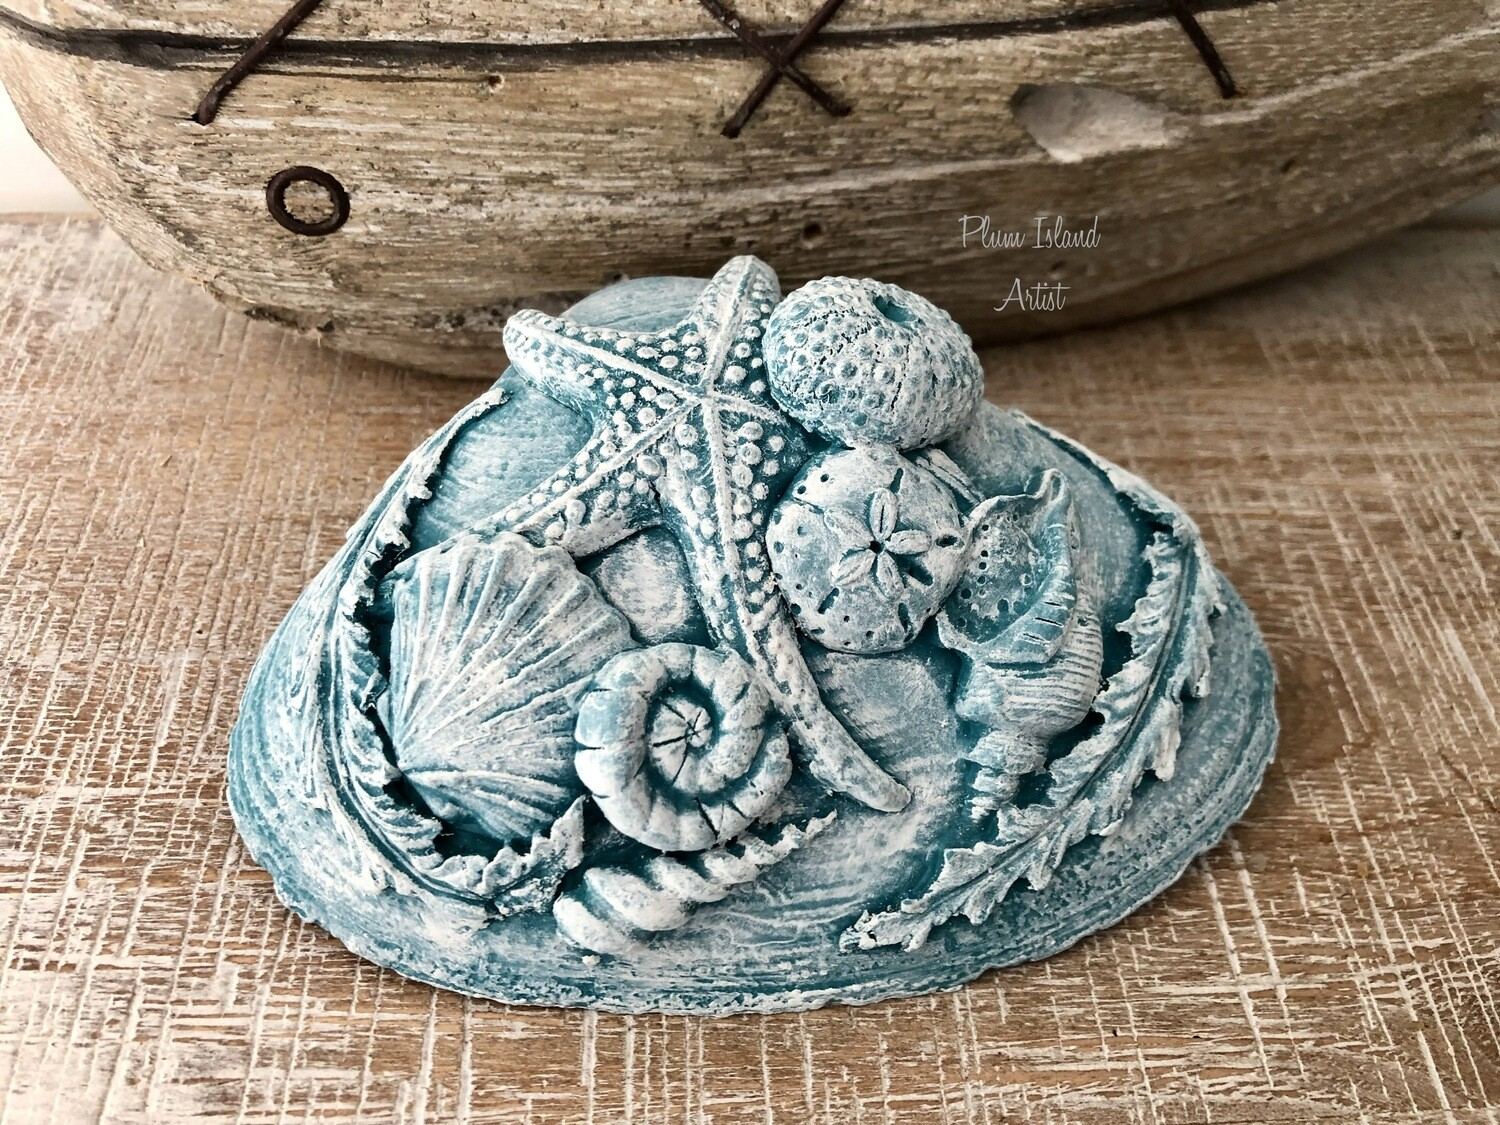 Clamshell embellished with clay